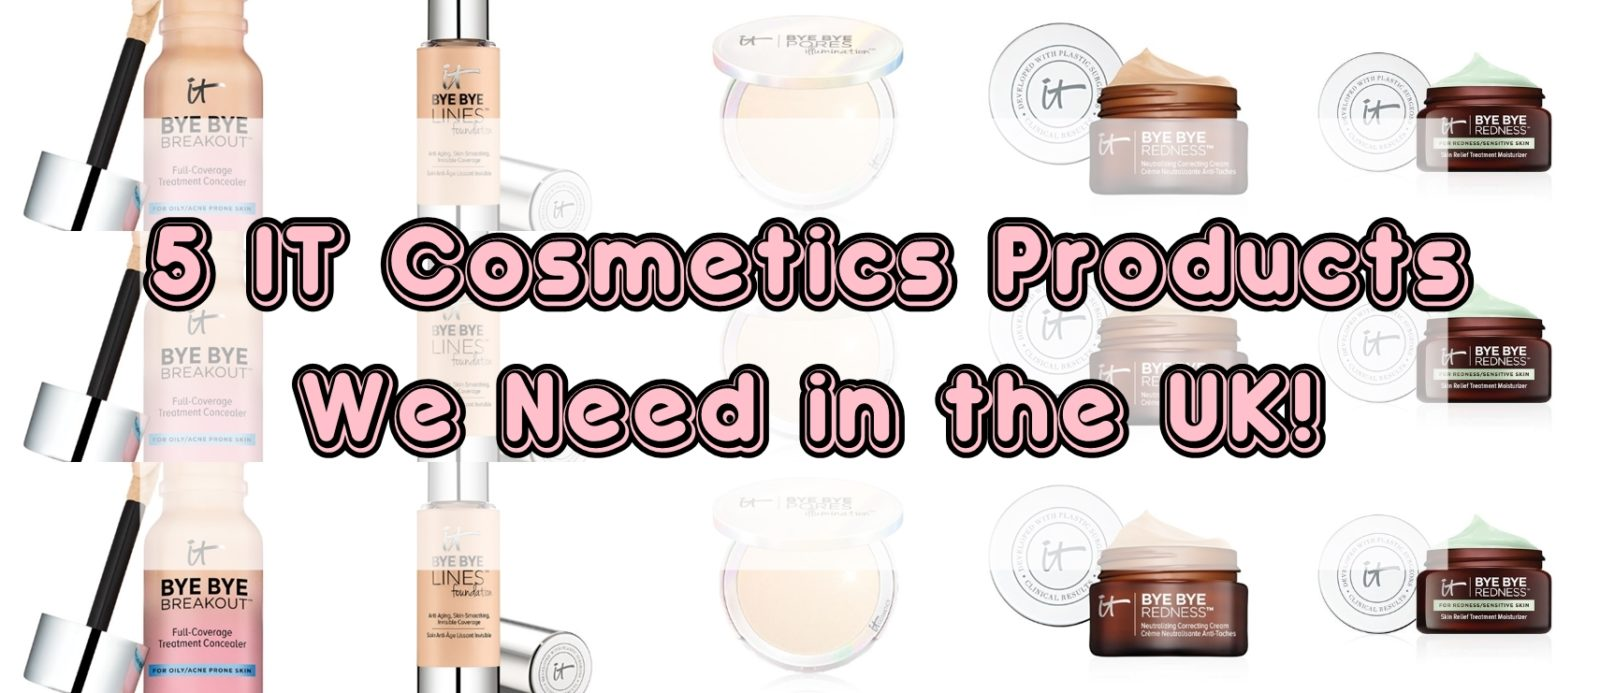 It Cosmetics Products We need in the UK